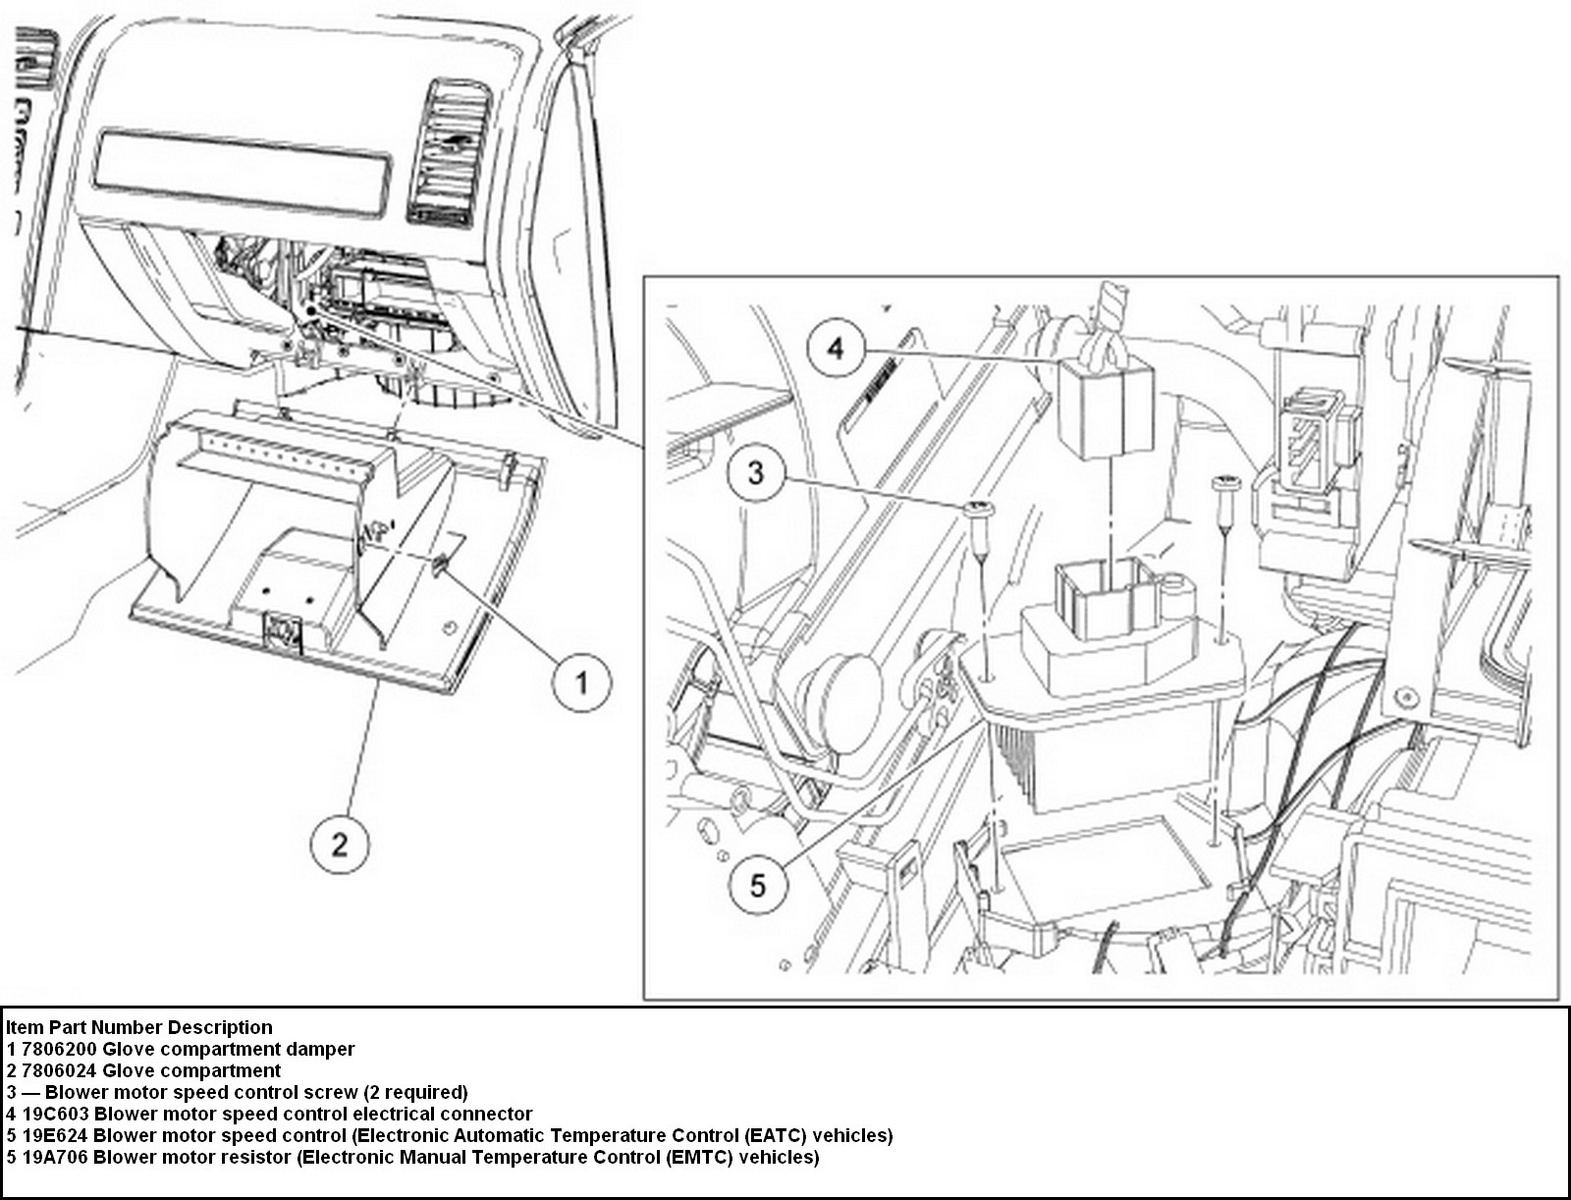 2007 Ford Edge Engine Diagram Cransflan Online Manuual Of Wiring 2008 F250 Fuse Box 10 Questions How Do You Remove And Replace Install A Blower Rh Skriptoase De